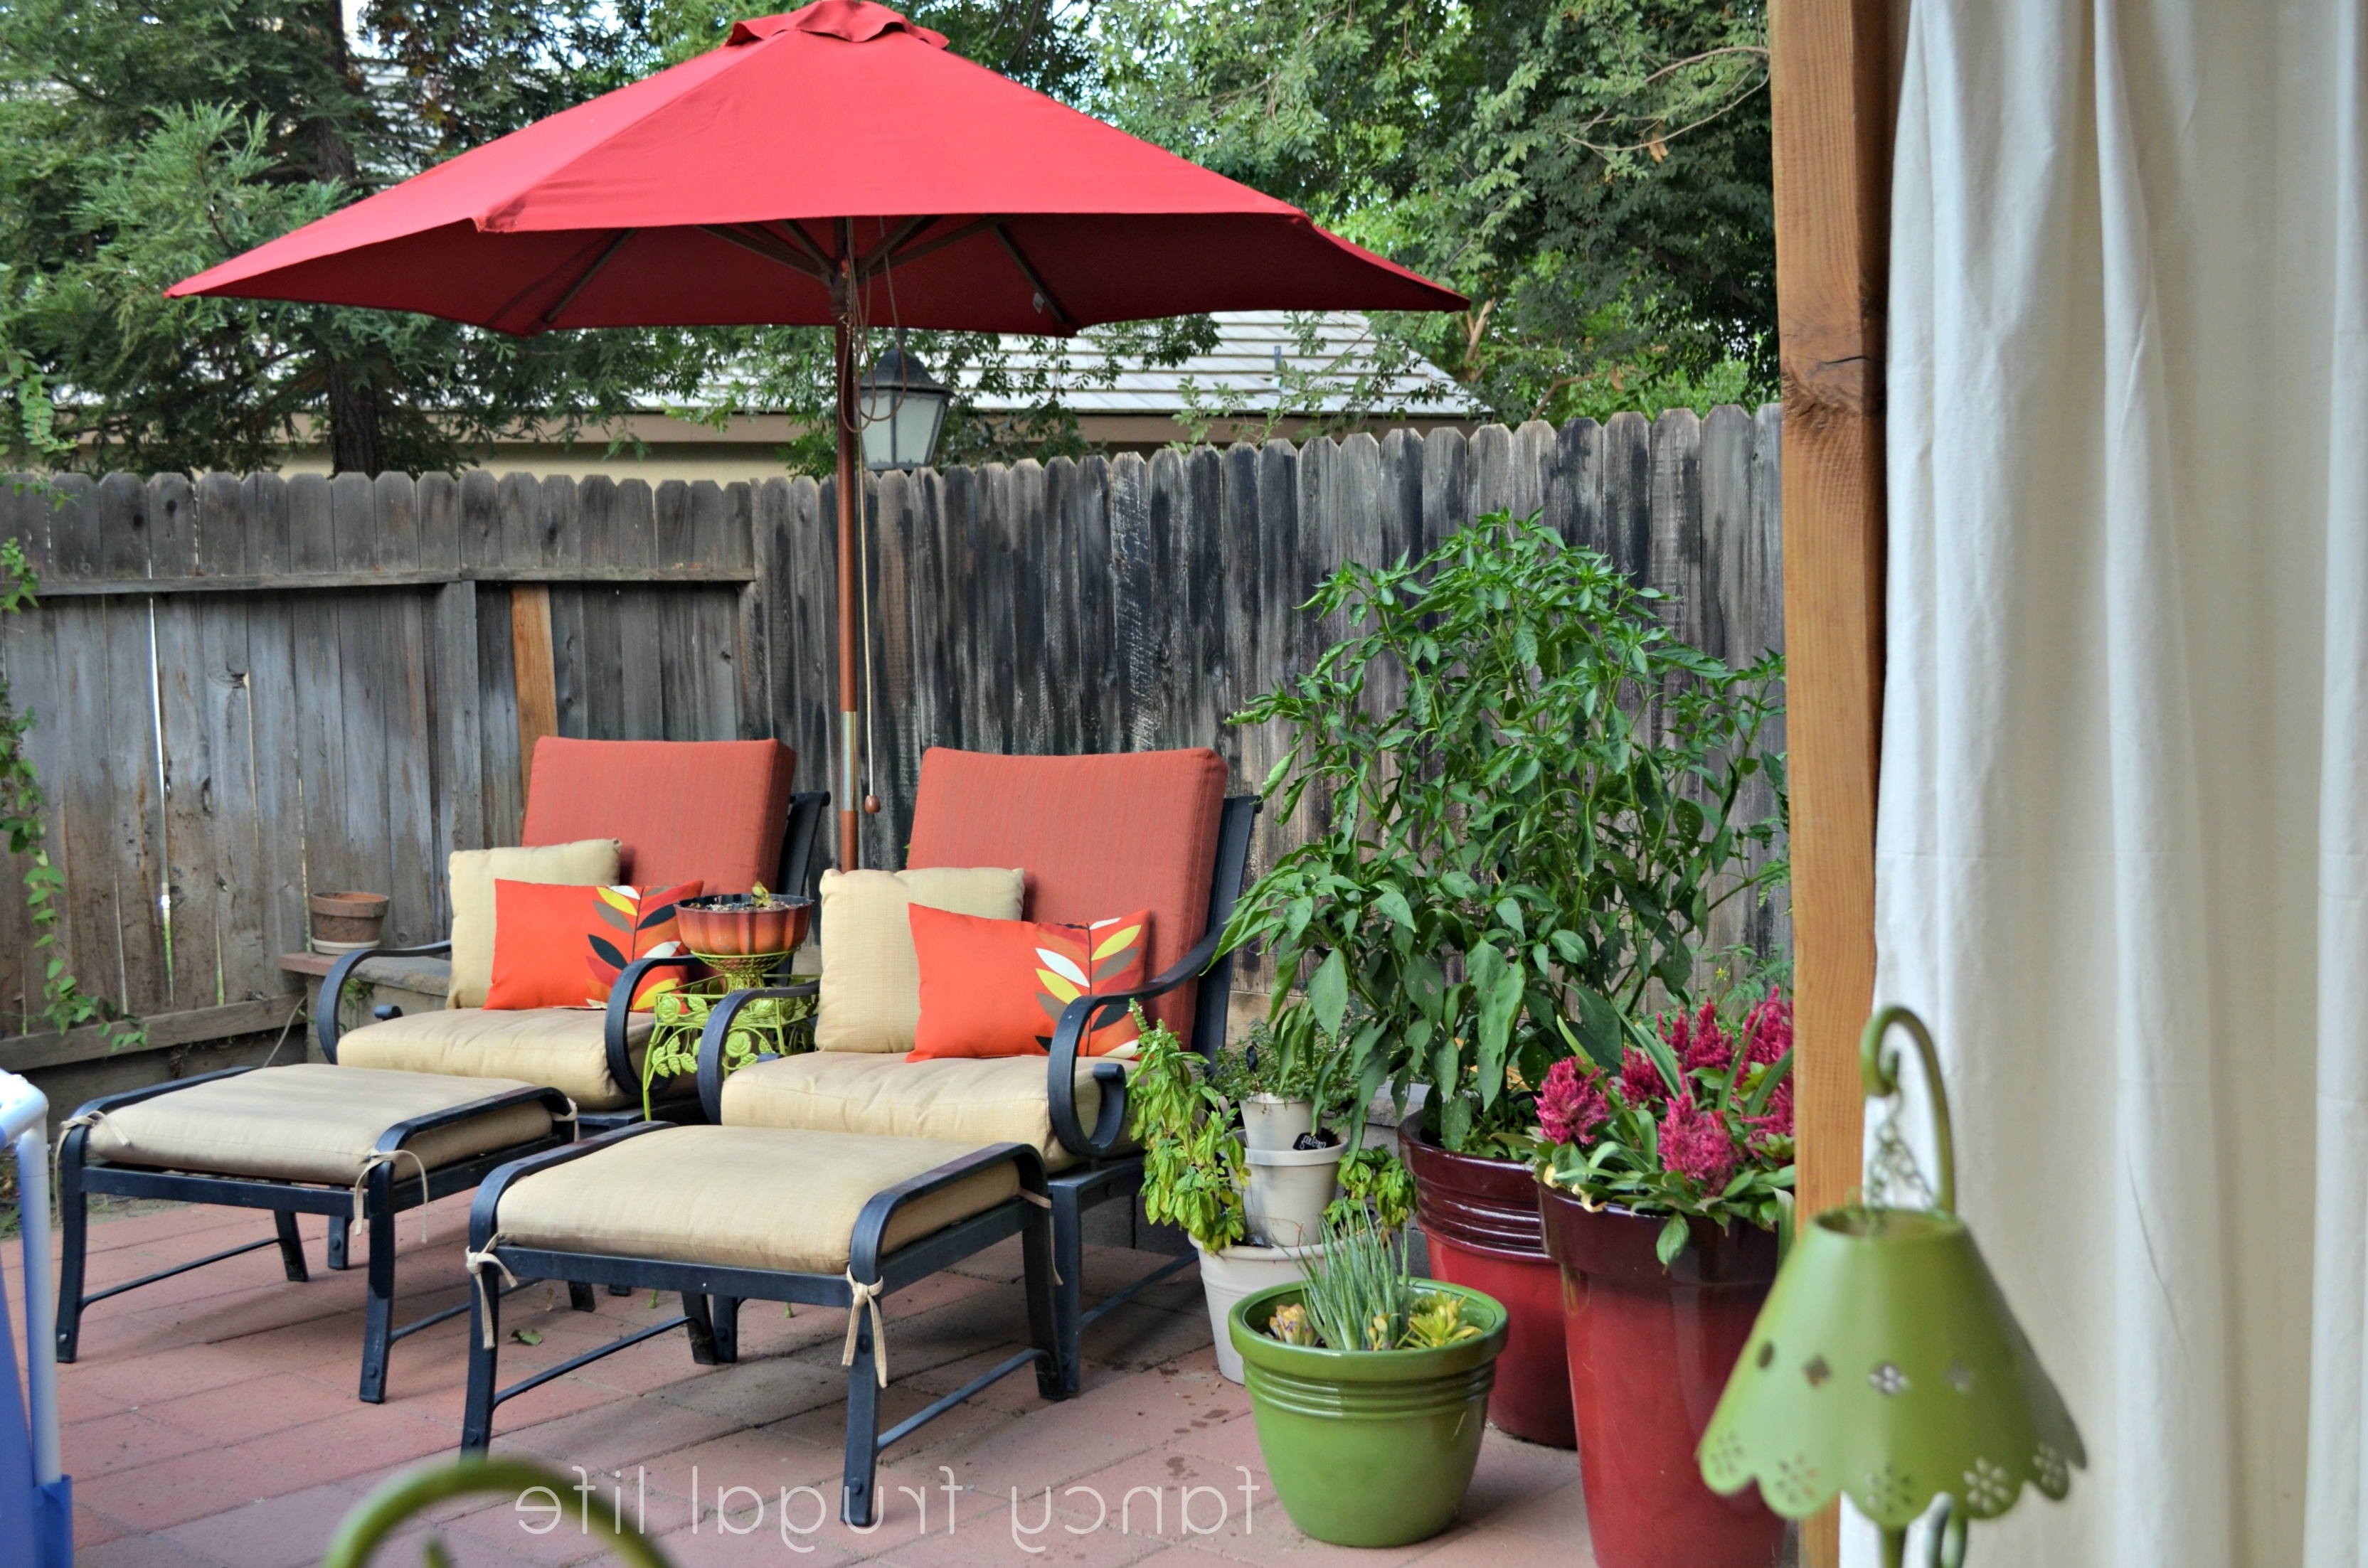 Latest Small Patio Tables With Umbrellas With Regard To Garden: Enchanting Outdoor Patio Decor Ideas With Patio Umbrellas (View 9 of 20)